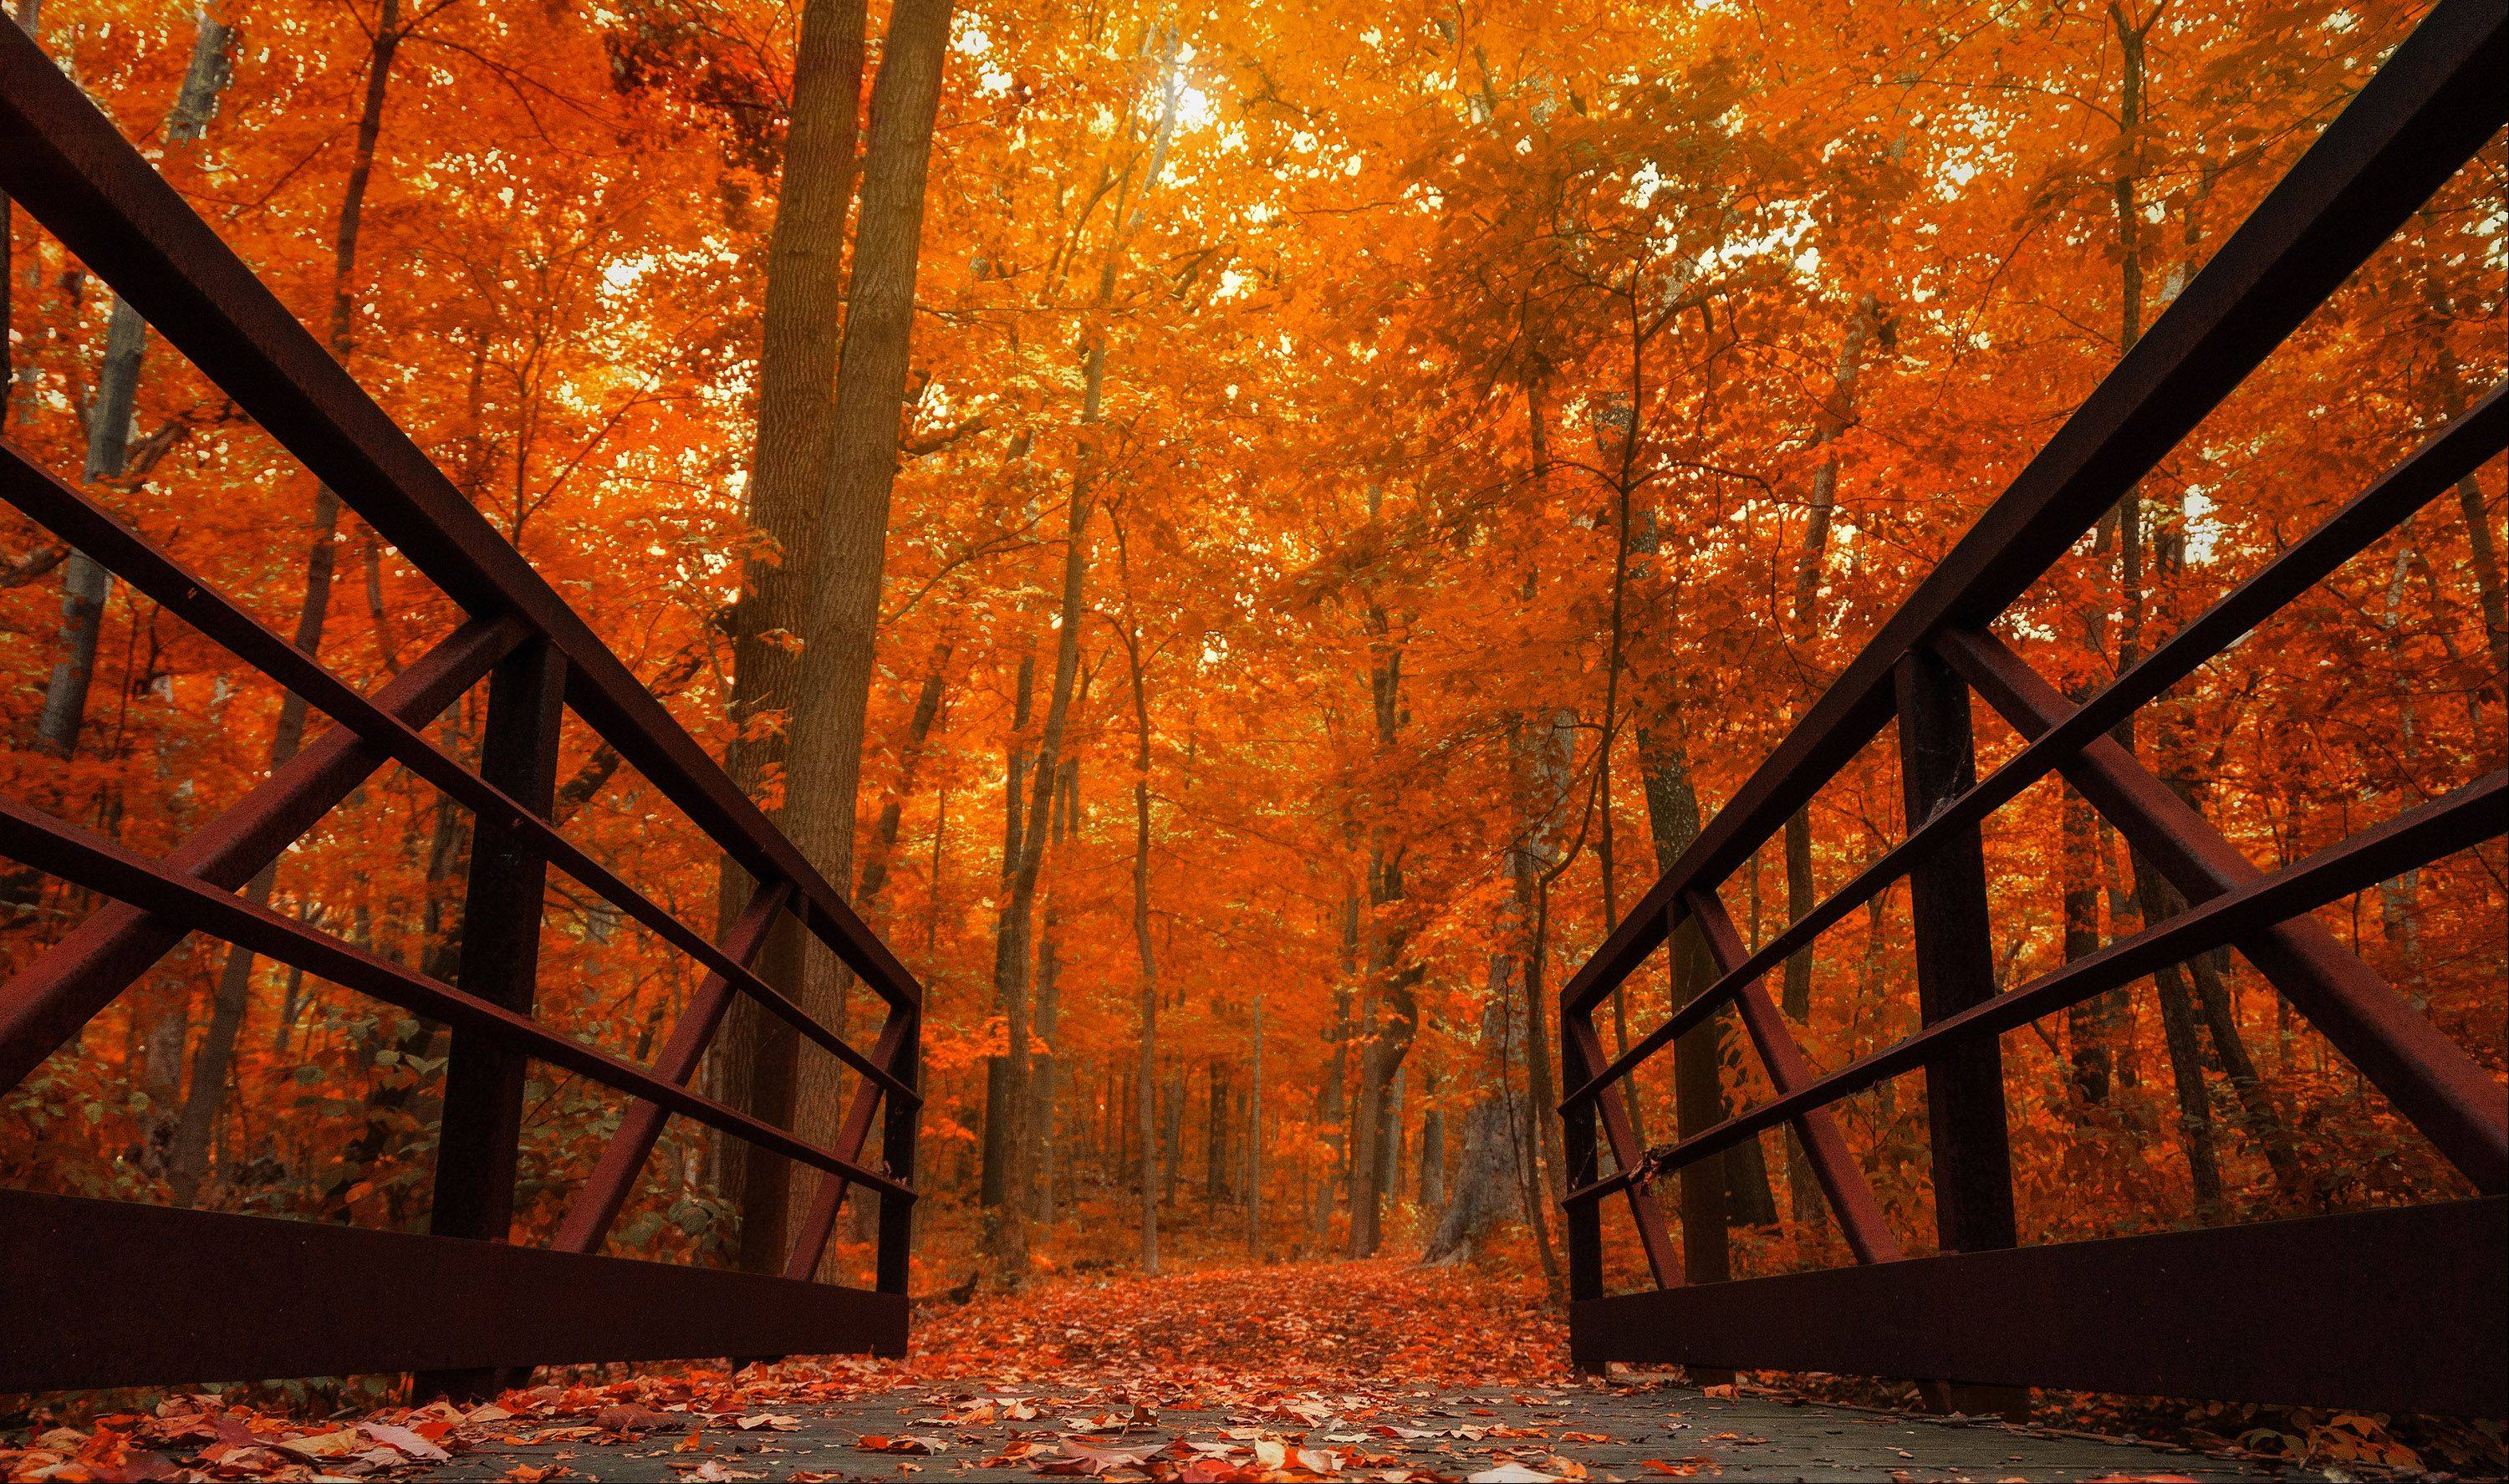 Mark Kuhlmann of Aurora took this photo at the Morton Arboretum in Lisle. �The bridge and fall colors came together to create a surreal scene,� he says.